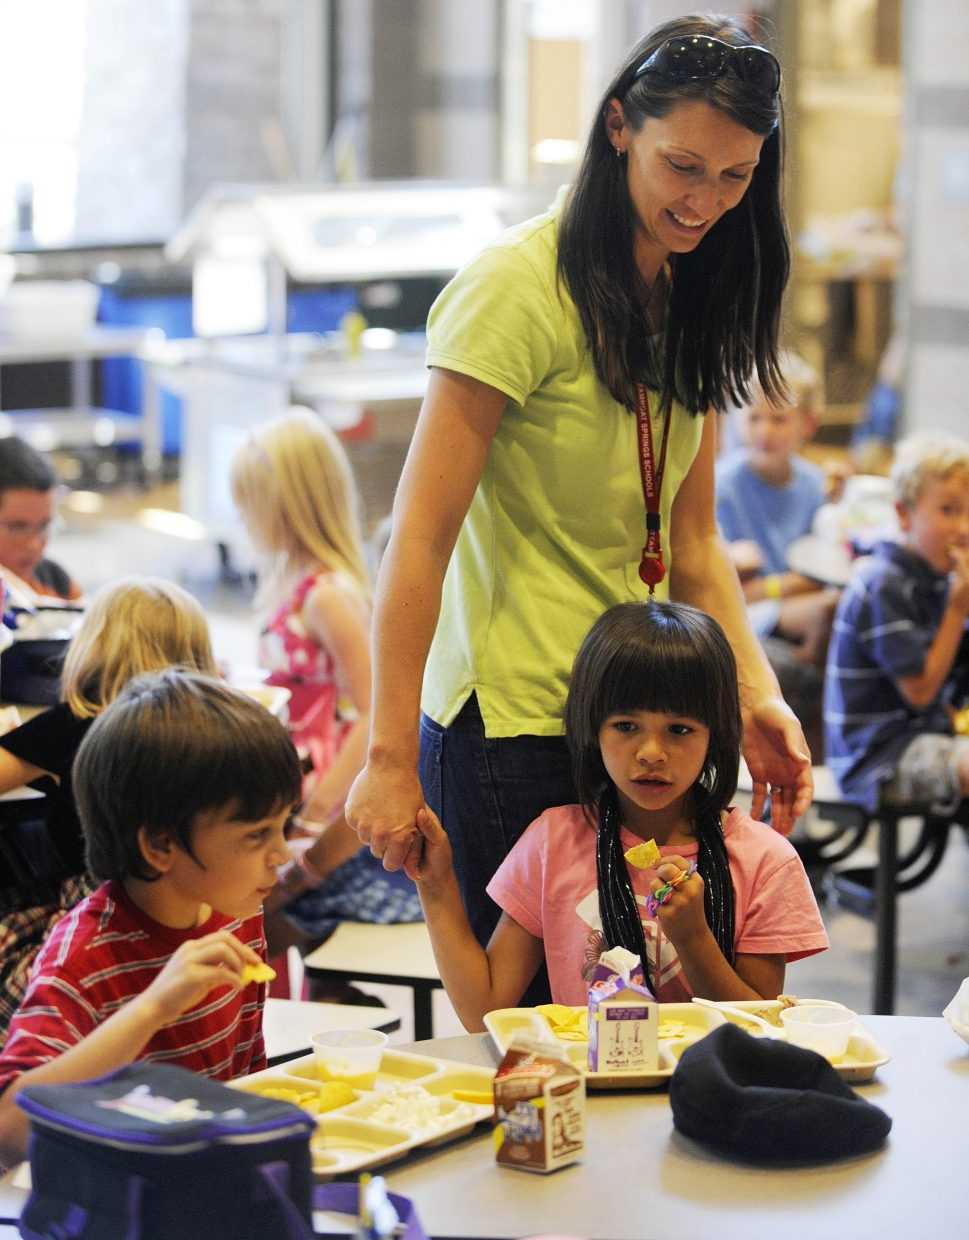 Soda Creek Elementary School second-grader Kaedynce Kaleikini reaches her hand out to new second-grade teacher Aurora King during lunch on the first day of school Wednesday.